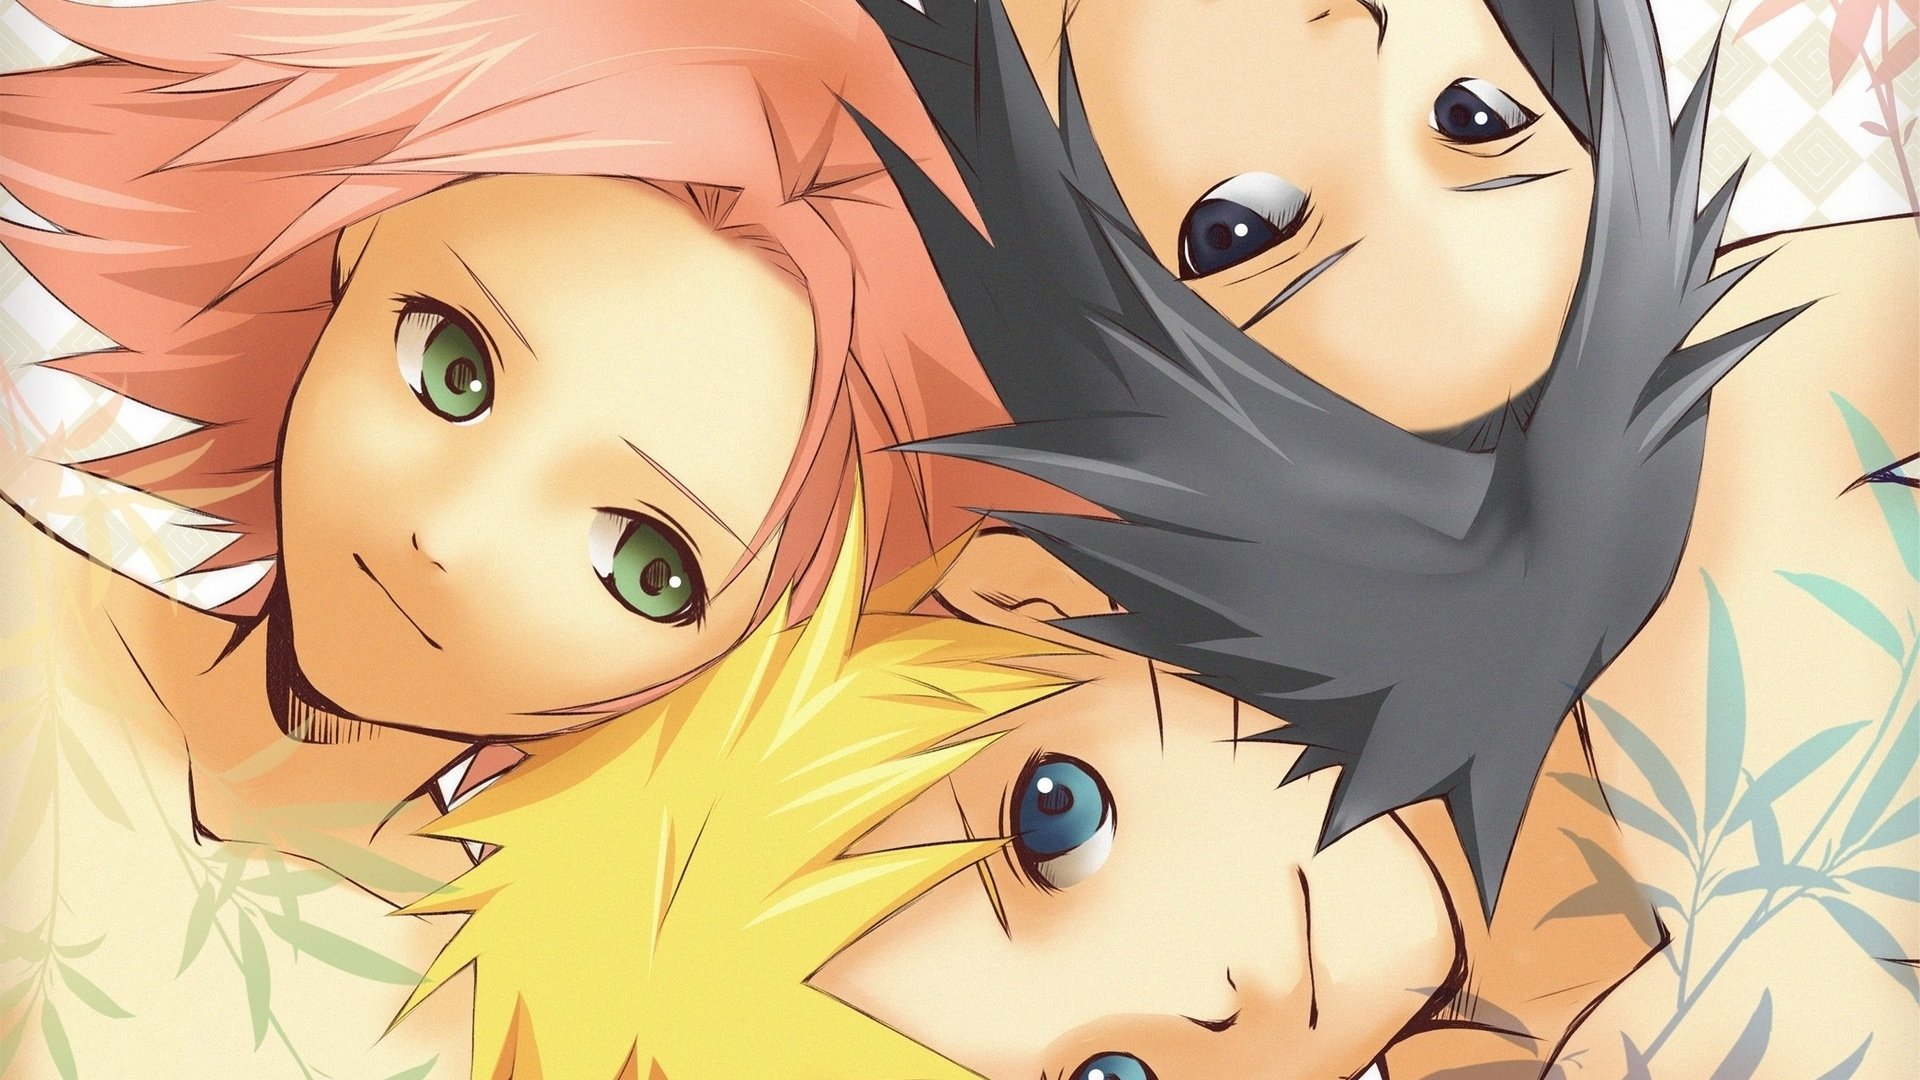 Cute anime wallpaper 1920x1080 wallpapersafari - Anime face wallpaper ...